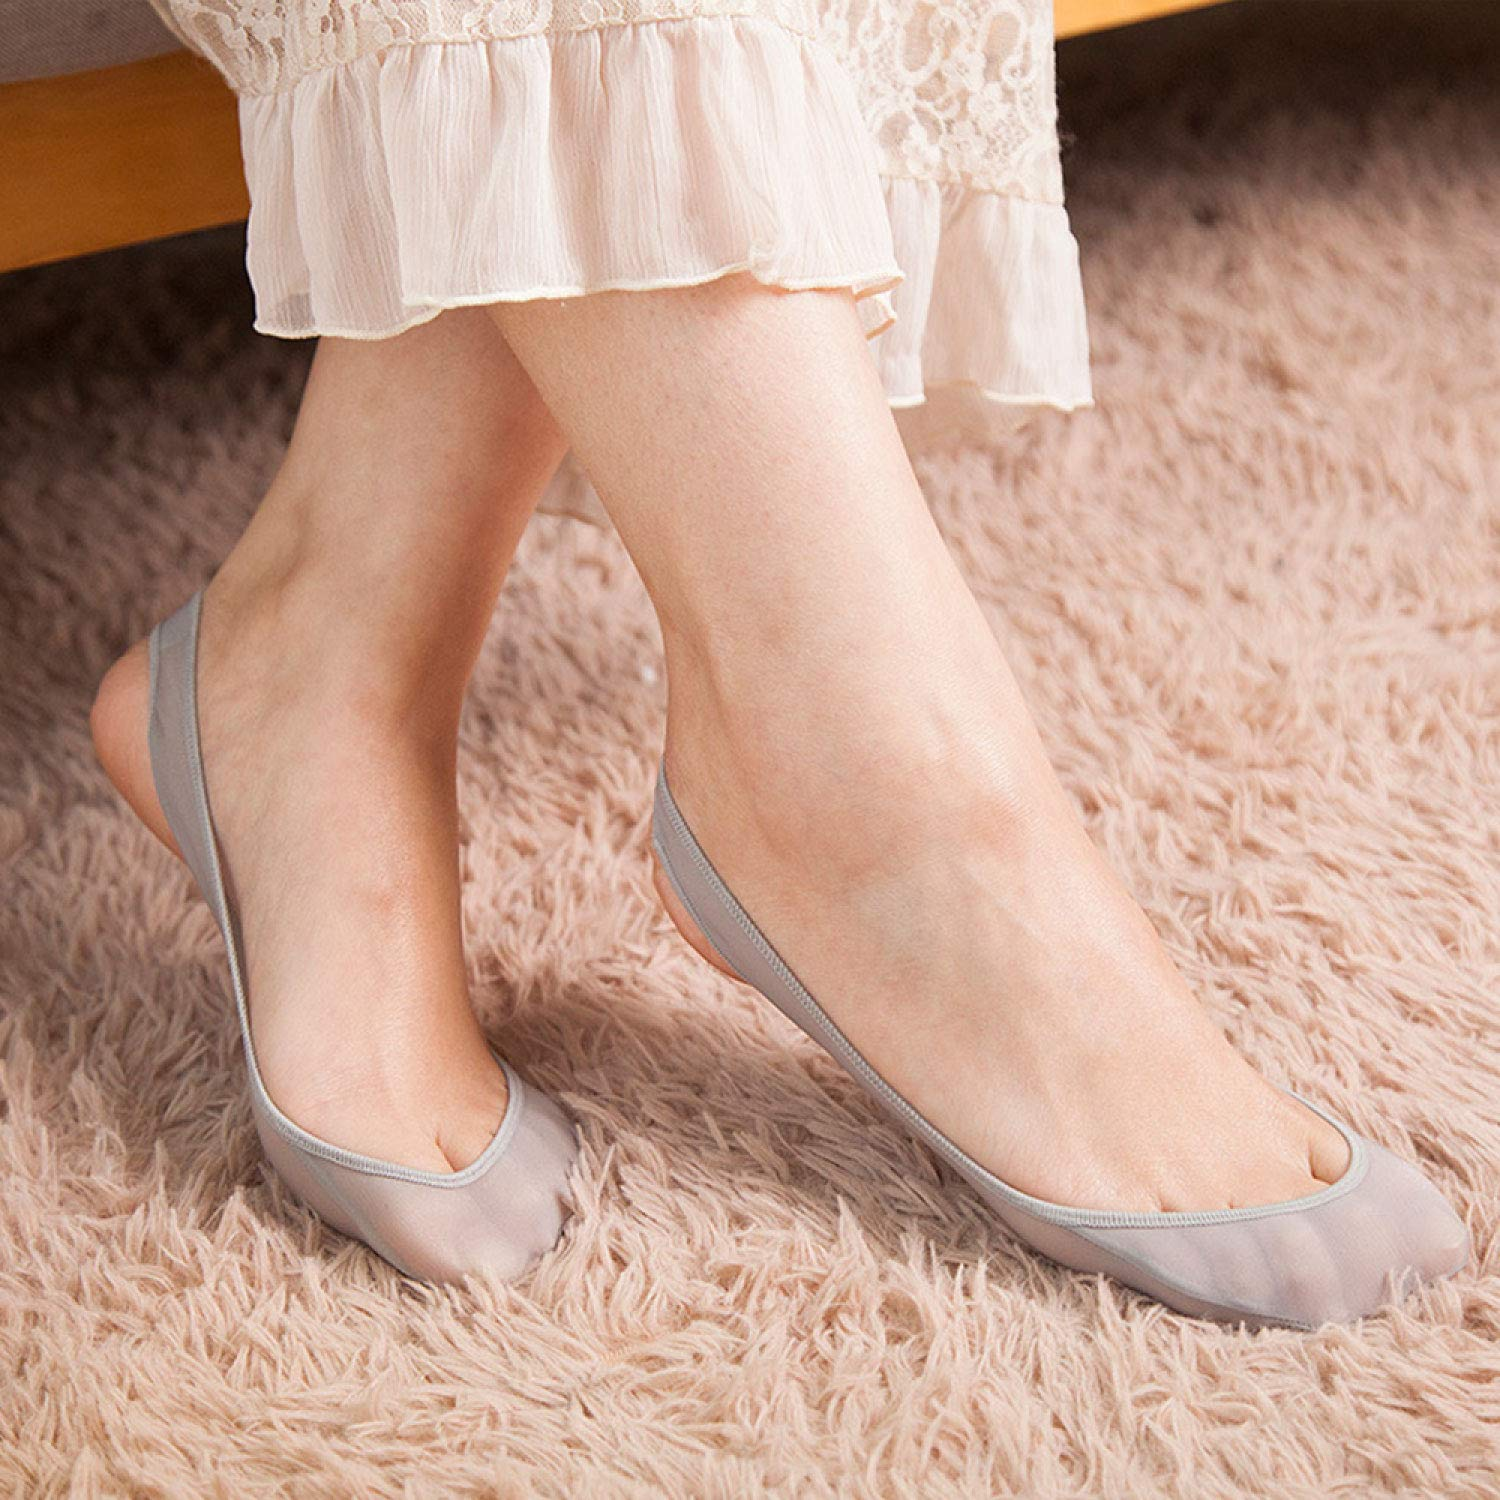 Liner Socks Seamless Invisible Socks with Pad Women/'s No Show Socks Non-Slip Grip.